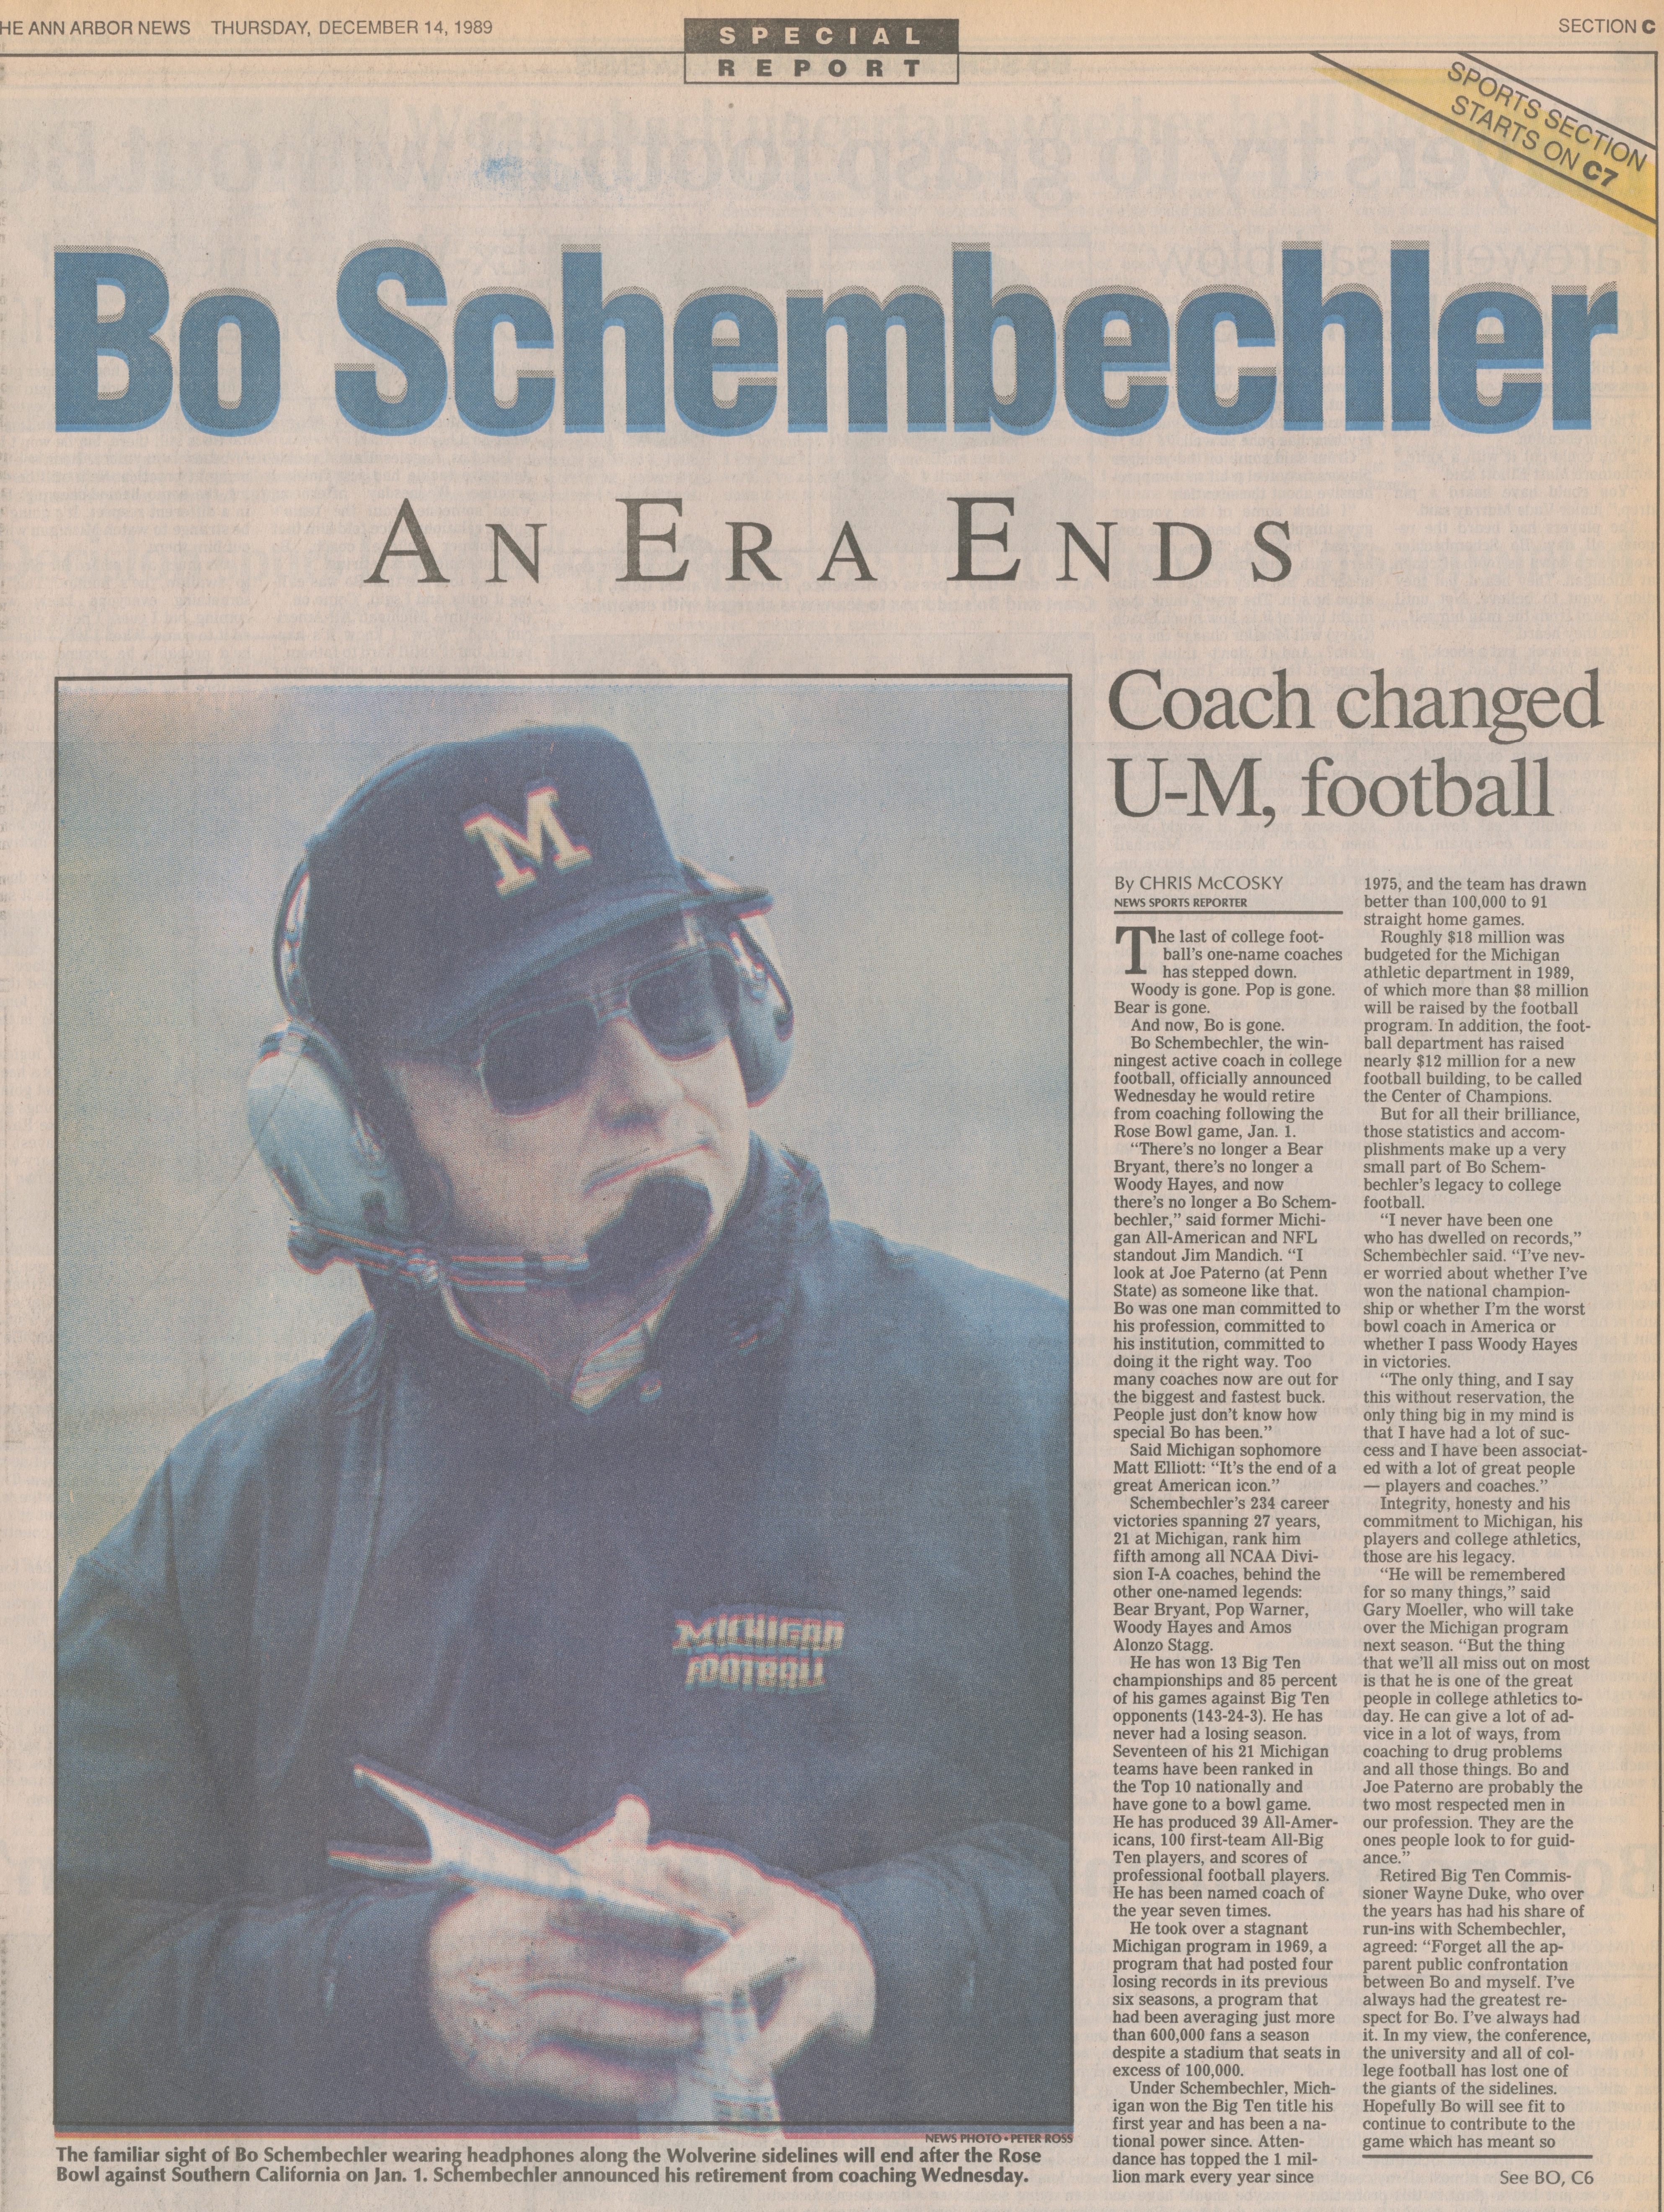 Bo Schembechler - An Era Ends image